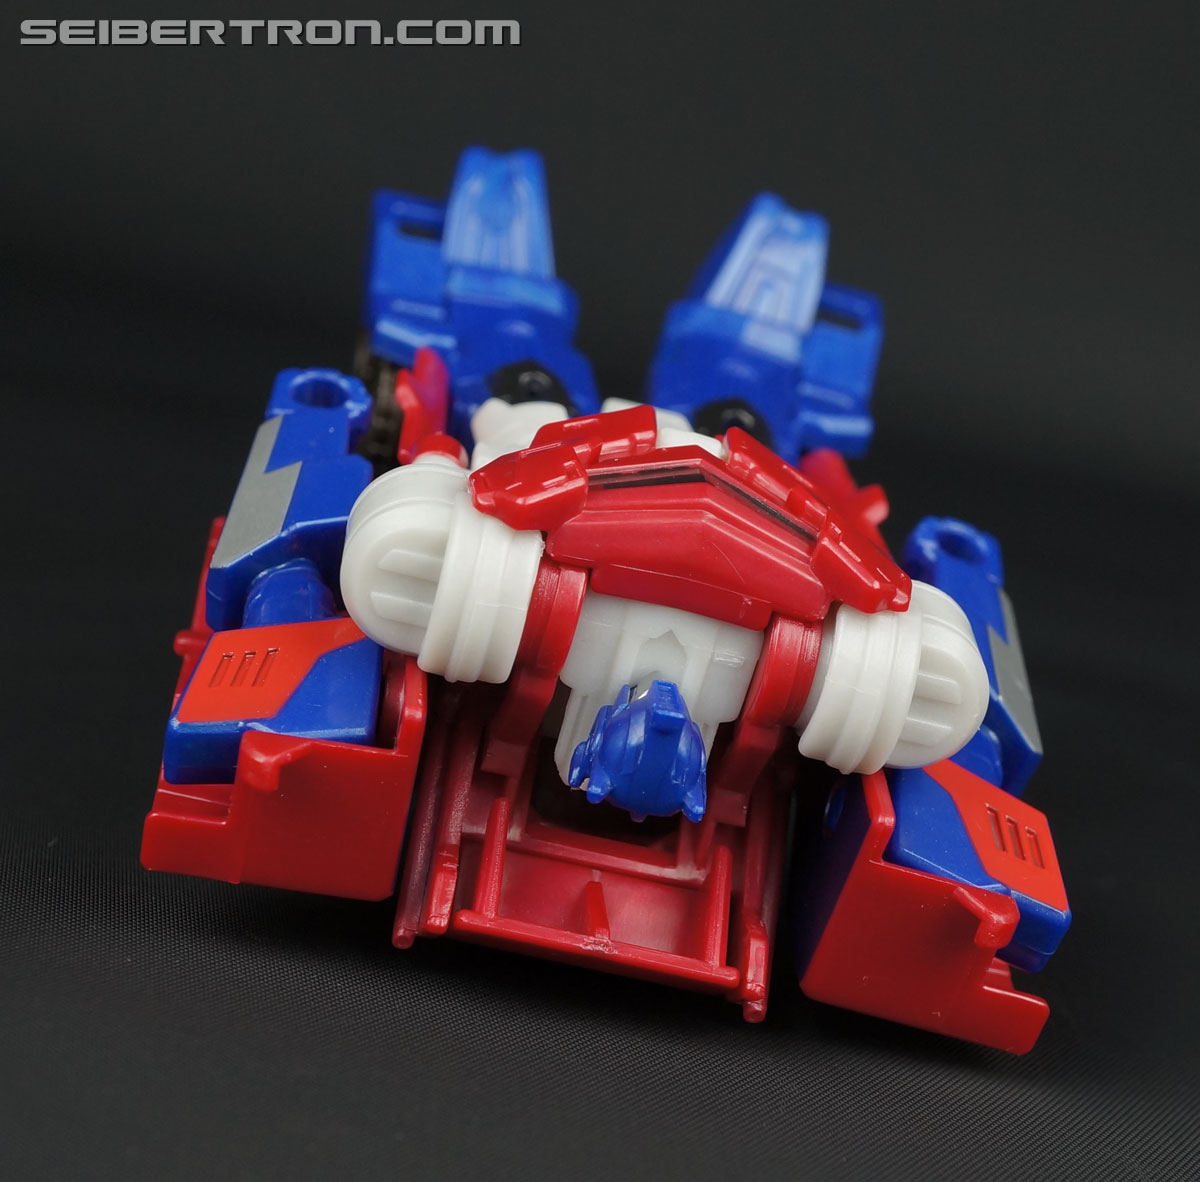 Transformers: Robots In Disguise Optimus Prime (Image #61 of 81)